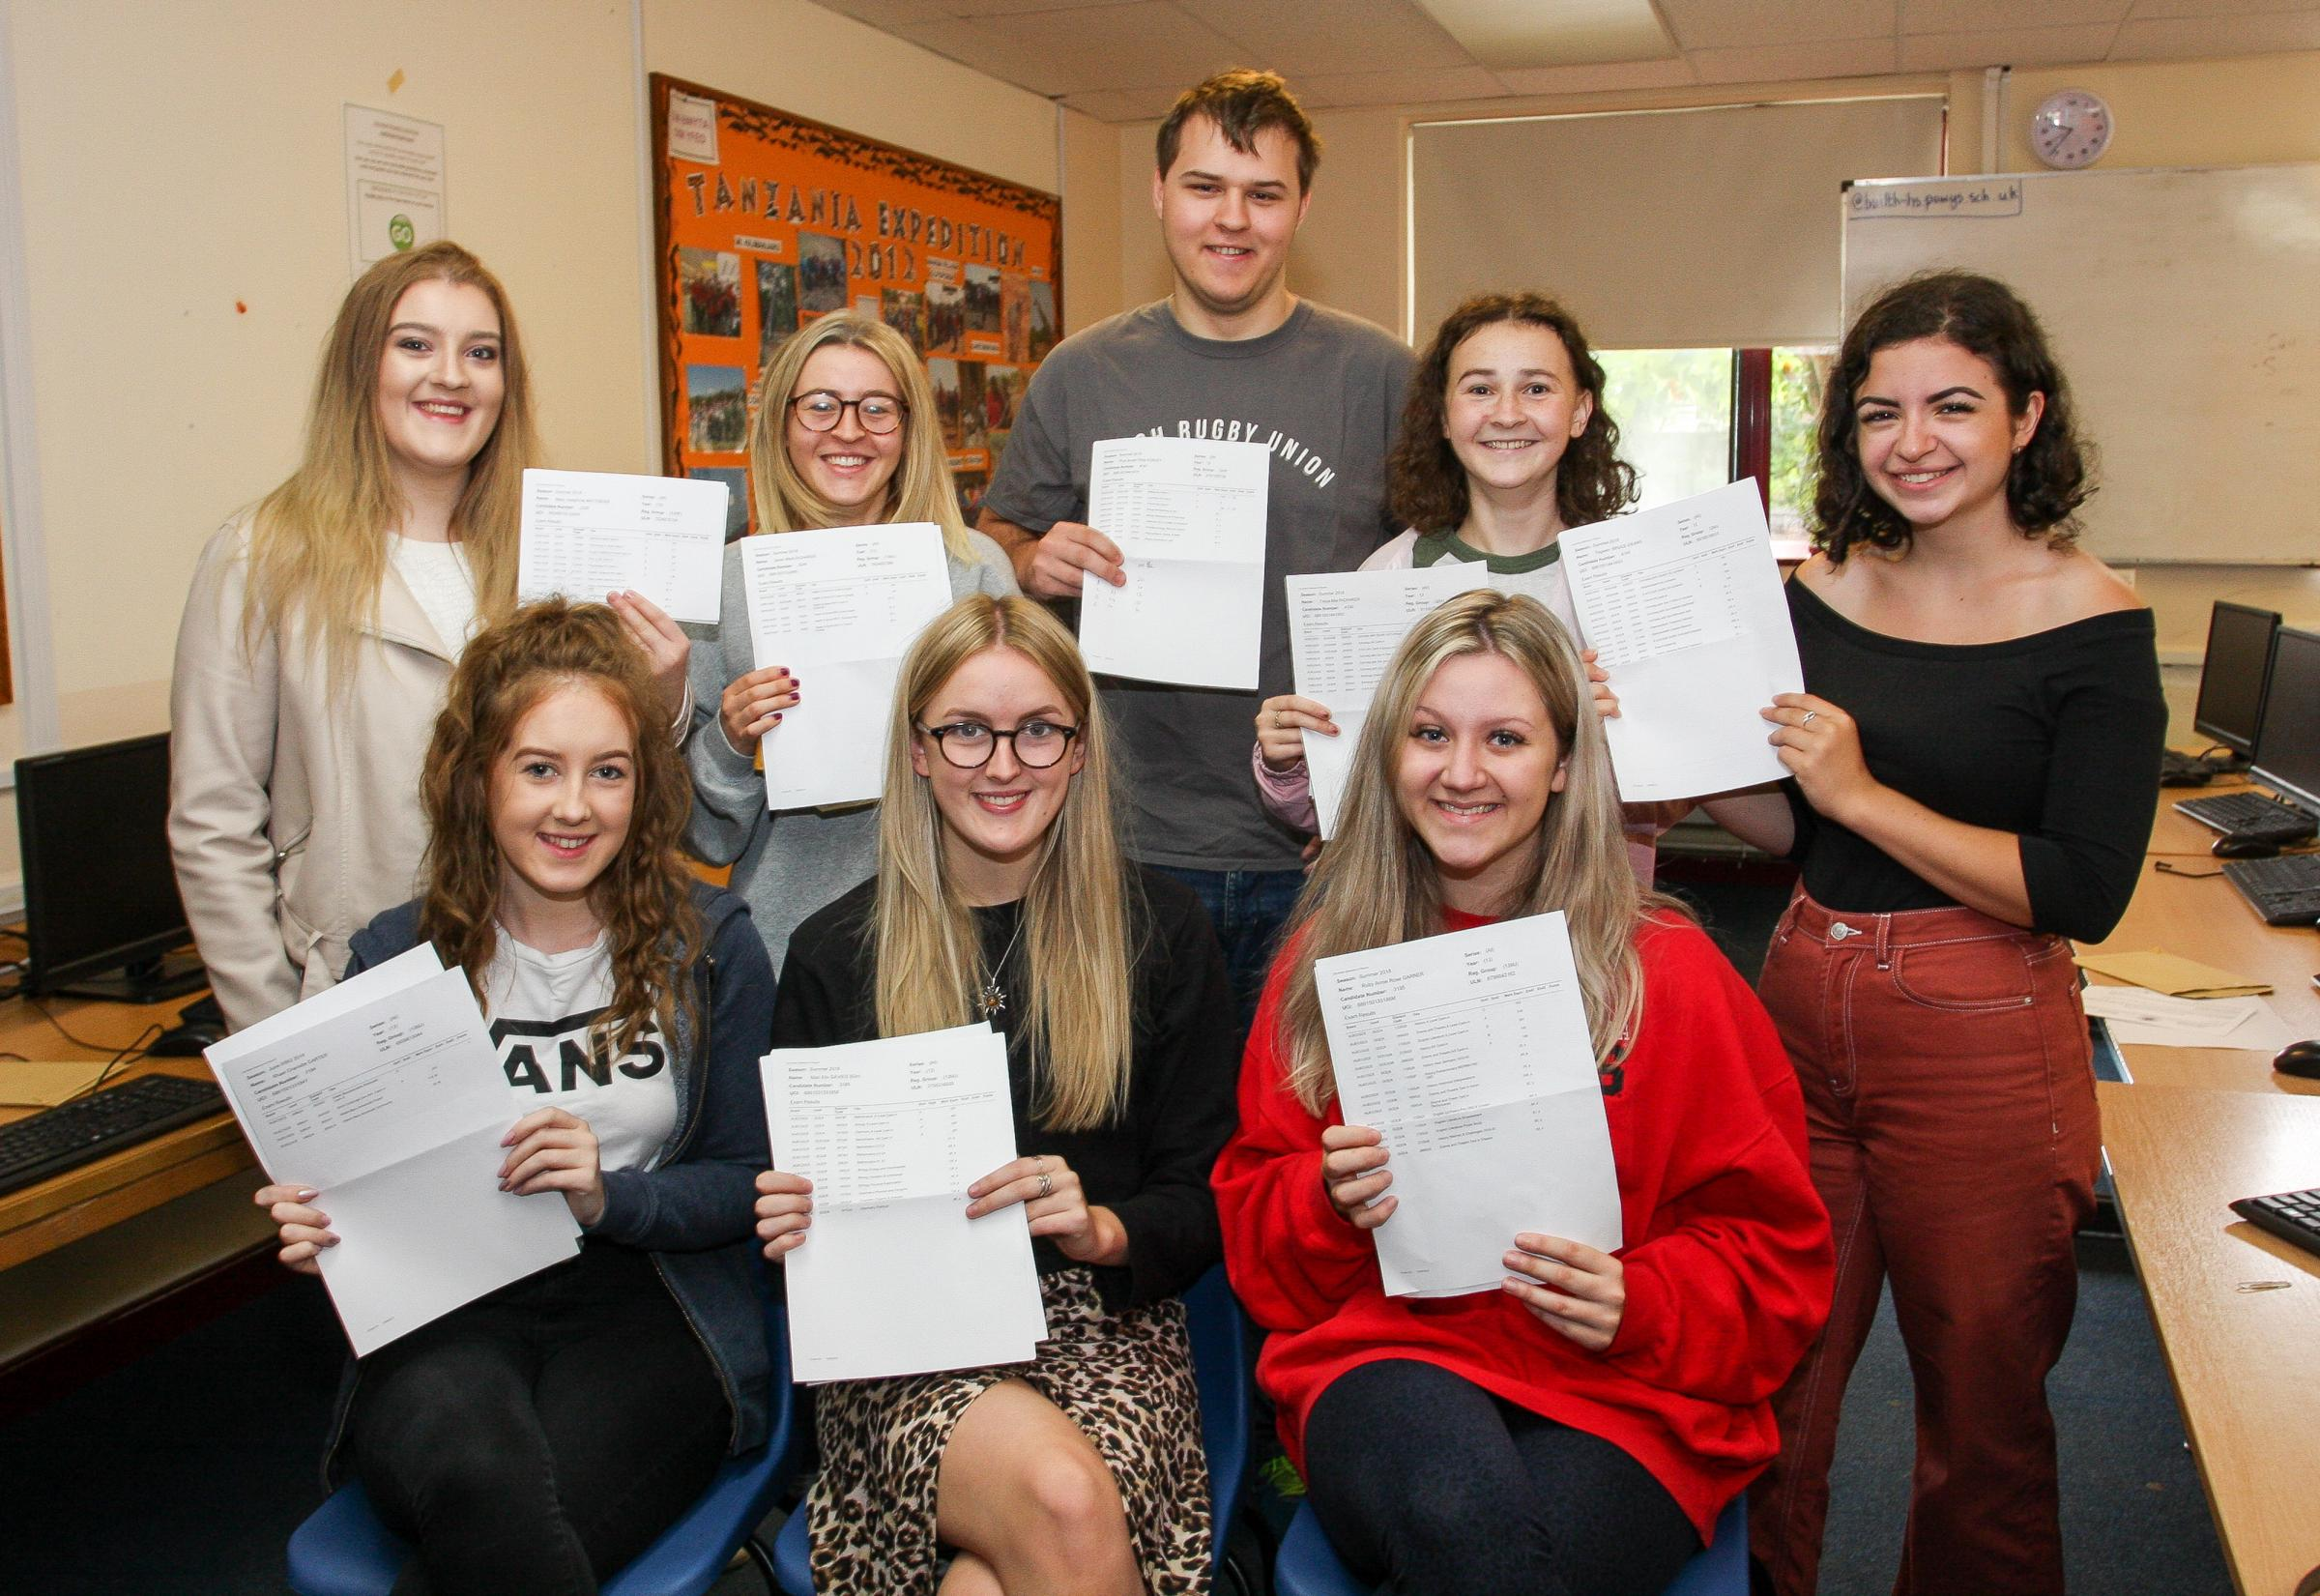 All smiles from students at Builth Wells Hugh School after they  collected their A Level results. They include  Mary Matthews, Rhael Carter, Elin Davies, Ruby Garner, Seren Richards, Prys Eckley, Freya  Richards and Tegwen Bruce- Deans.